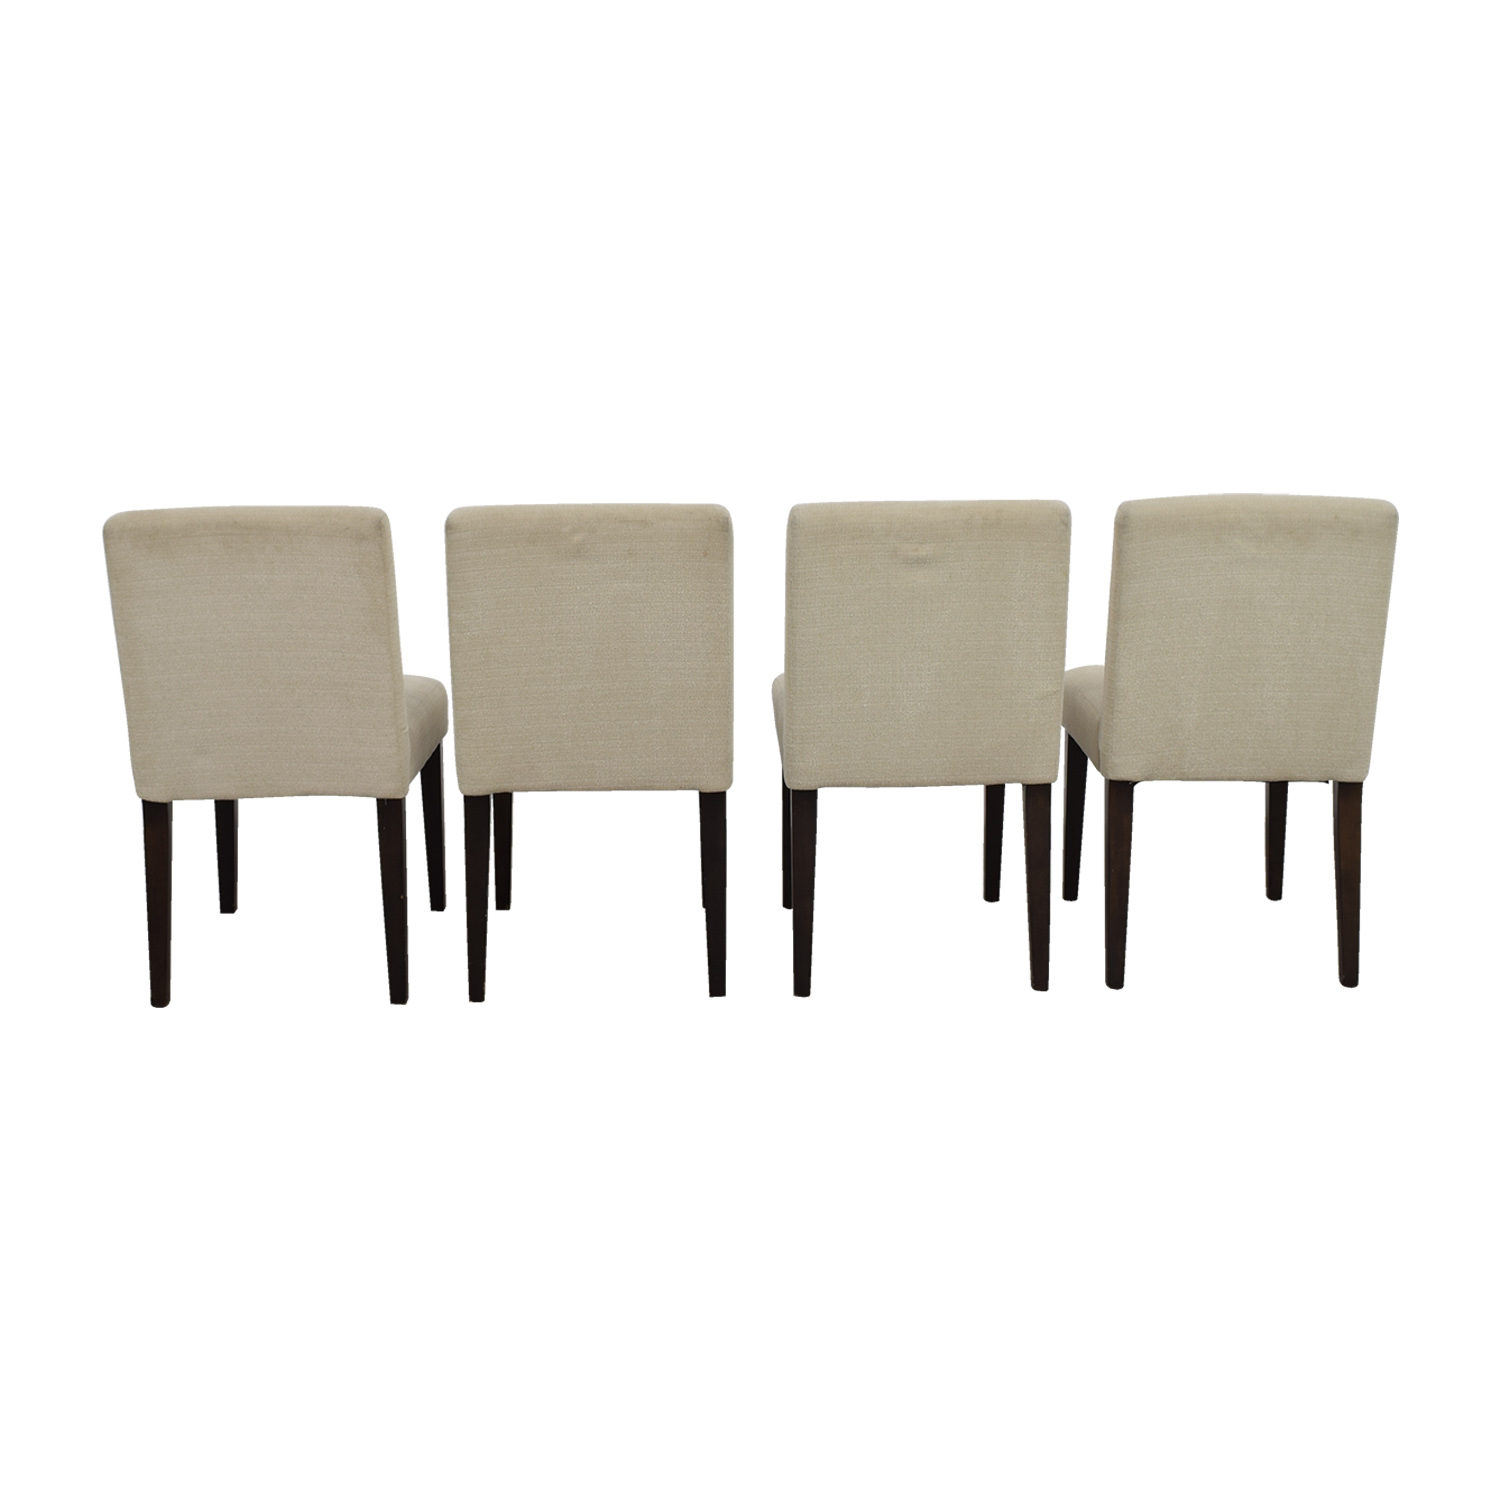 Beige Upholstered Dining Chairs used